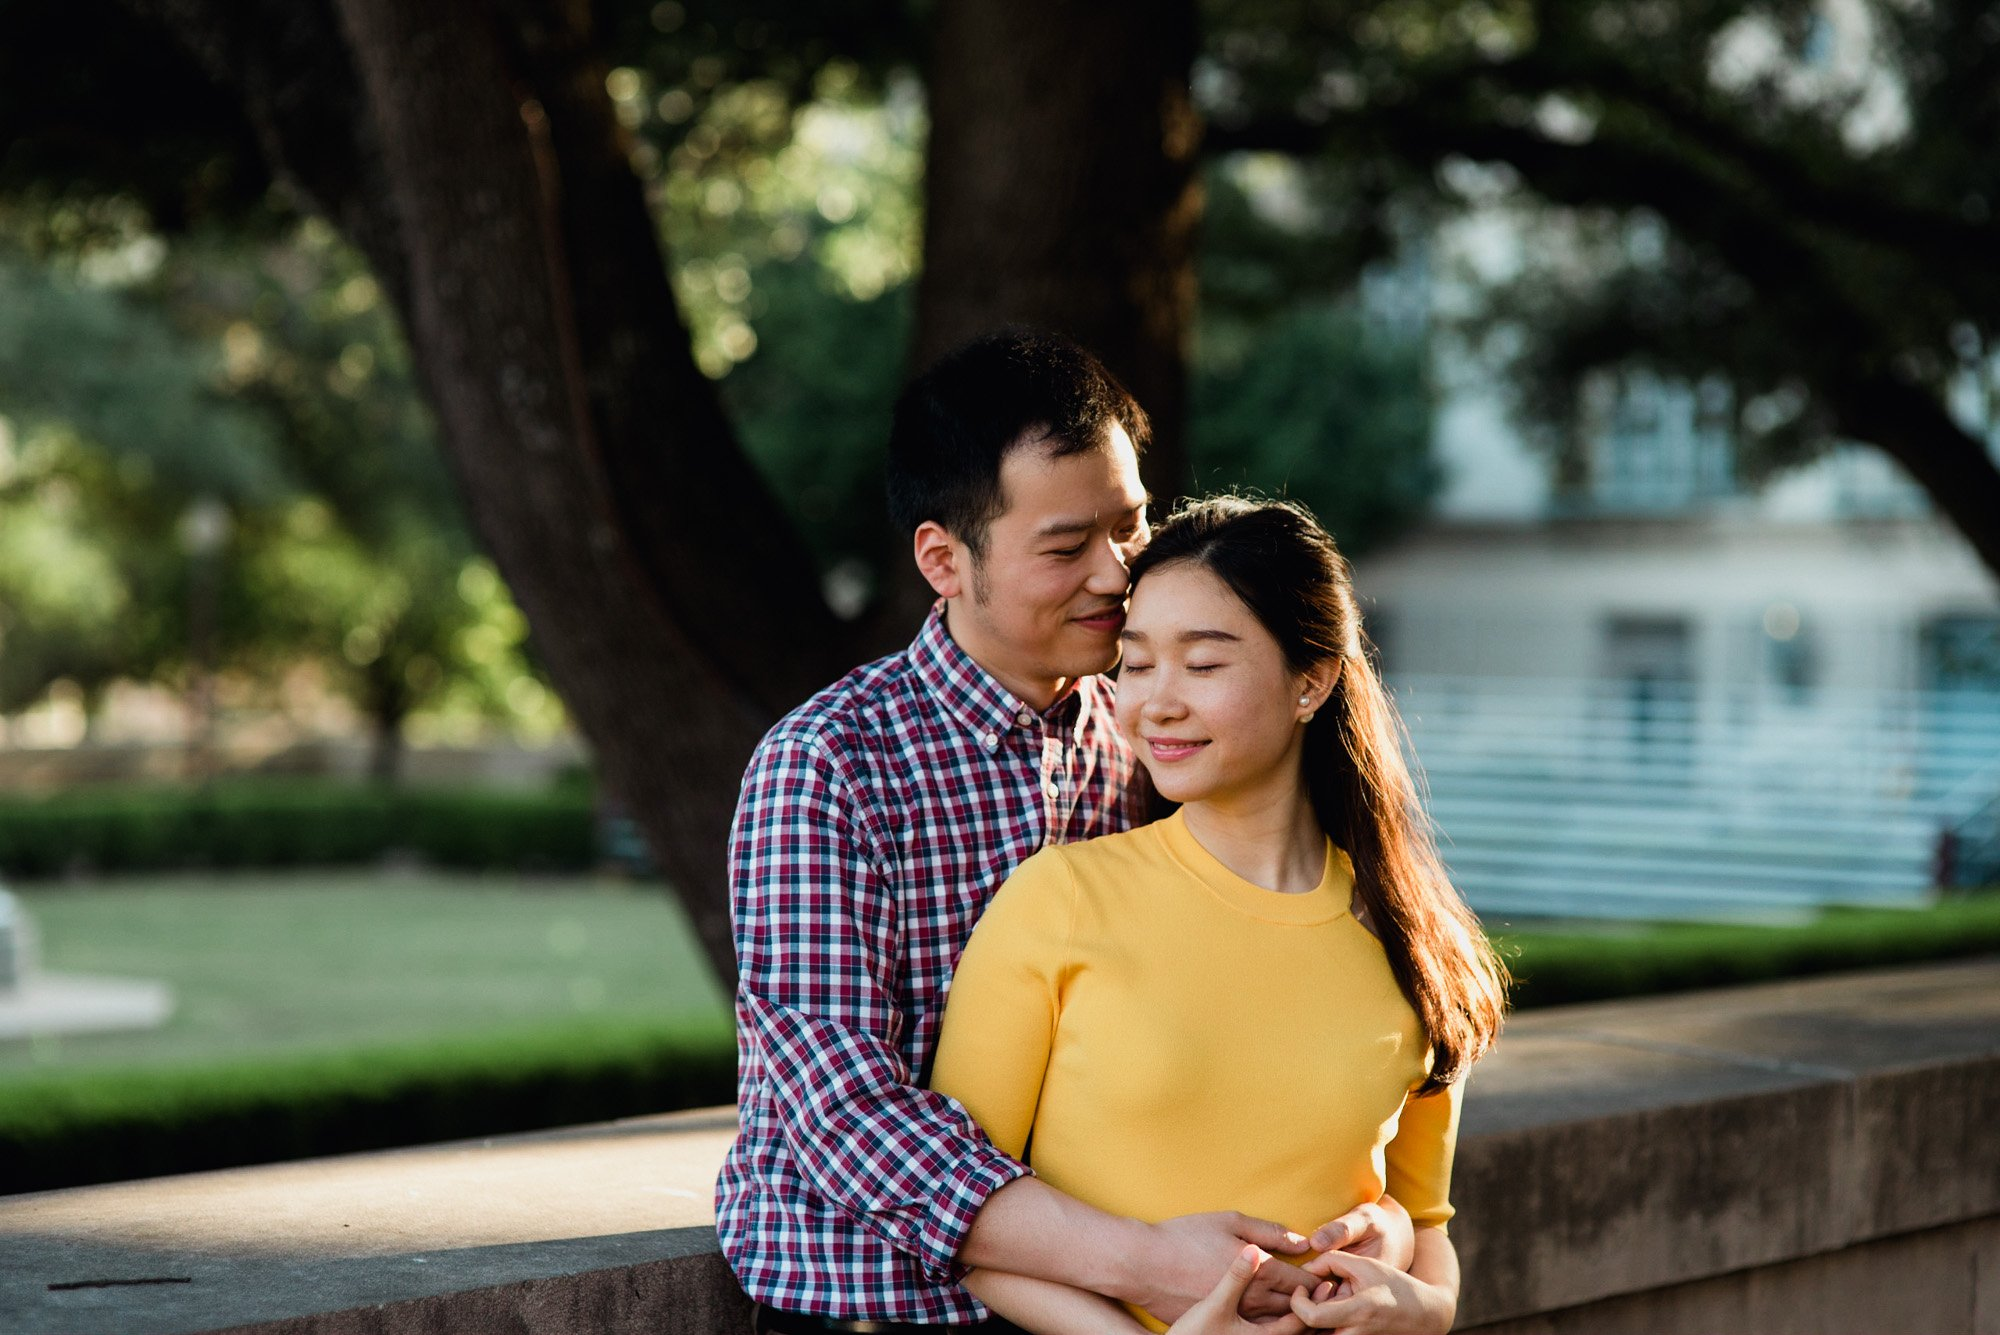 university of texas engagement portraits, UT austin photo locations, colorful engagement photographers